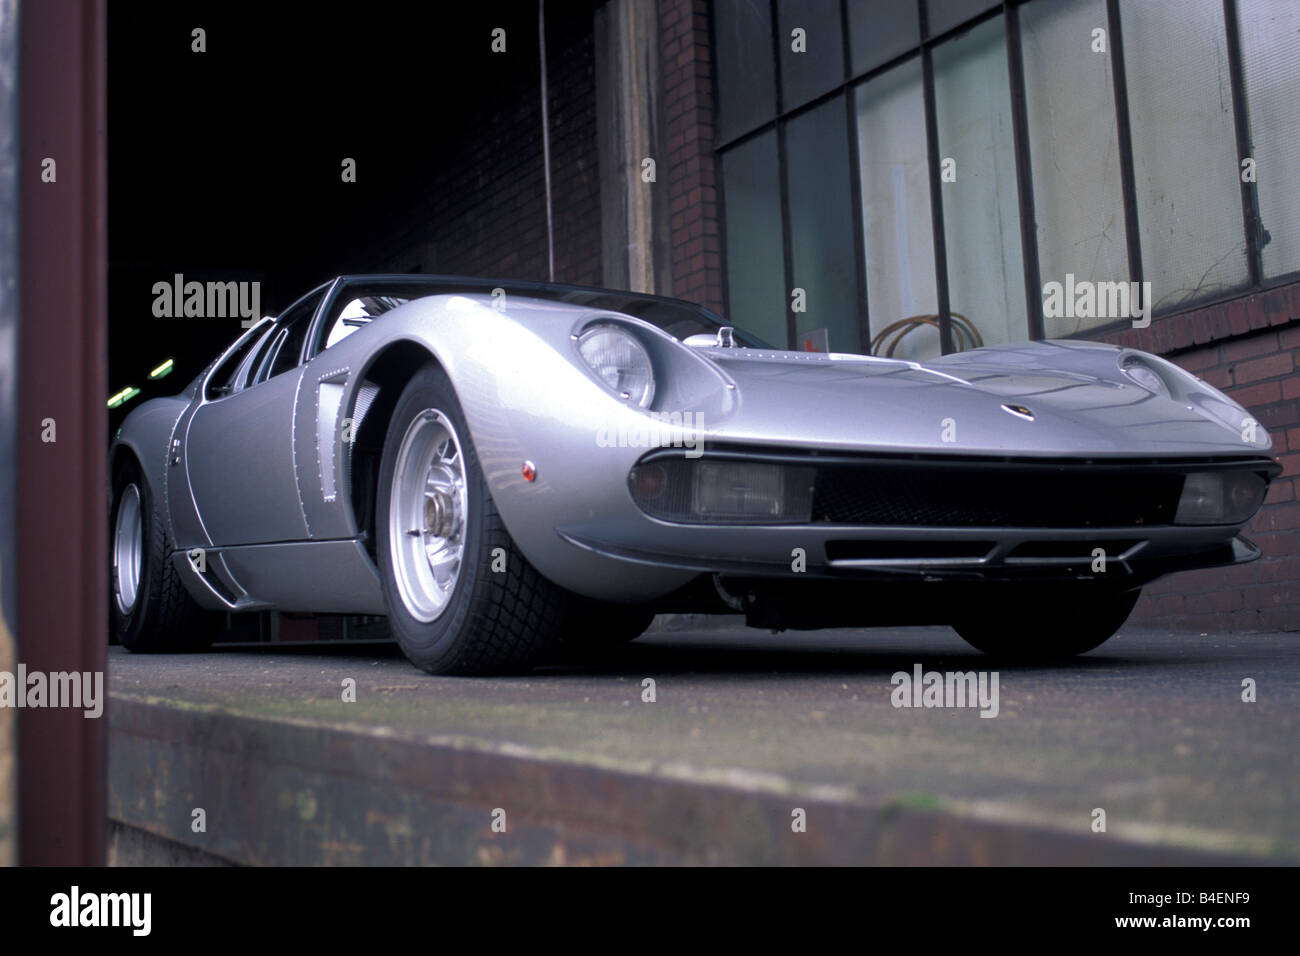 https://c8.alamy.com/comp/B4ENF9/car-lamborghini-miura-sv-jota-model-year-1970s-seventies-silver-sports-B4ENF9.jpg